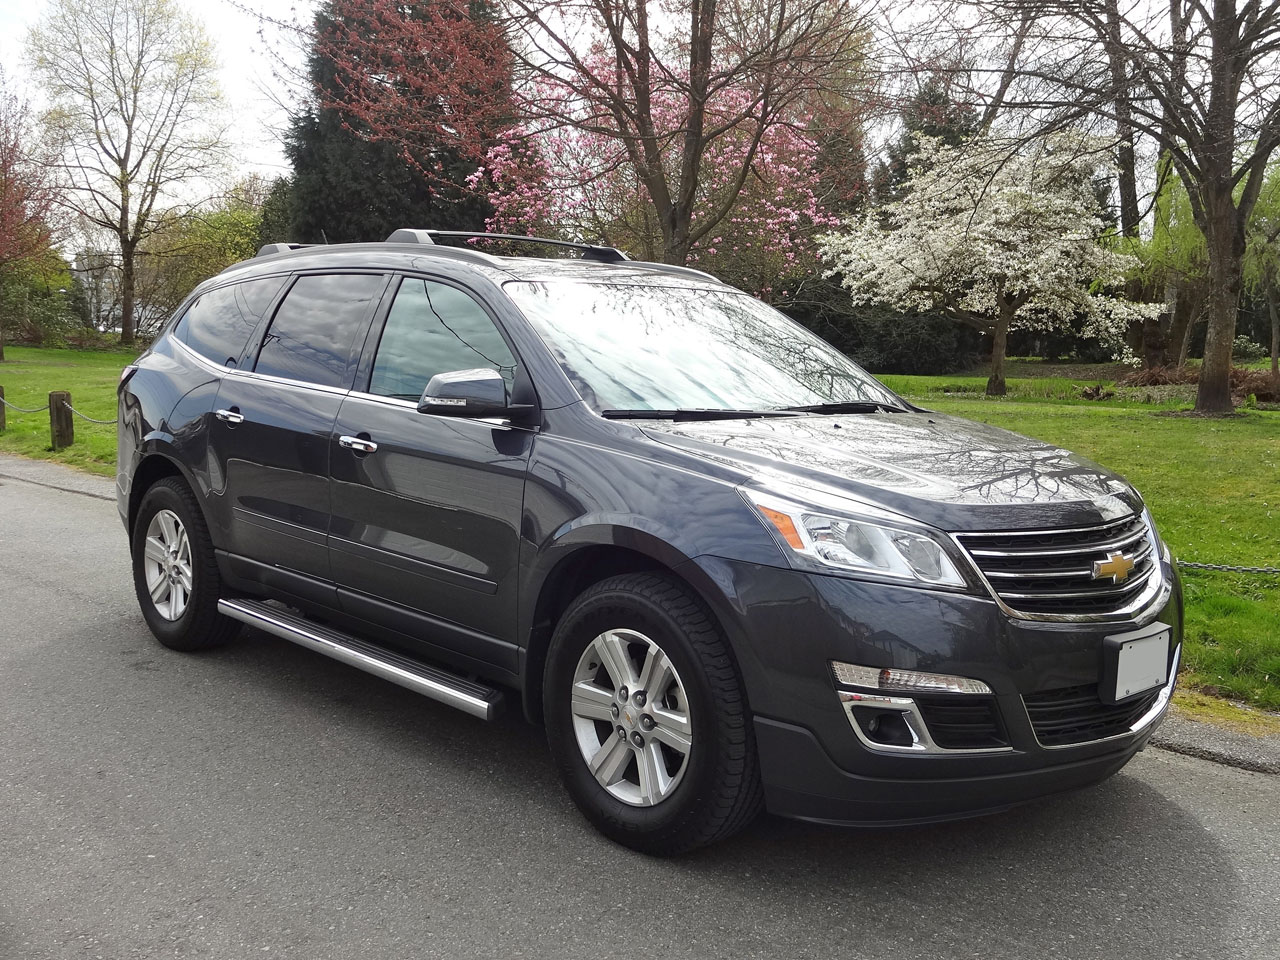 2014 Chevrolet Traverse LT AWD Road Test Review. +31 · New Car Reviews